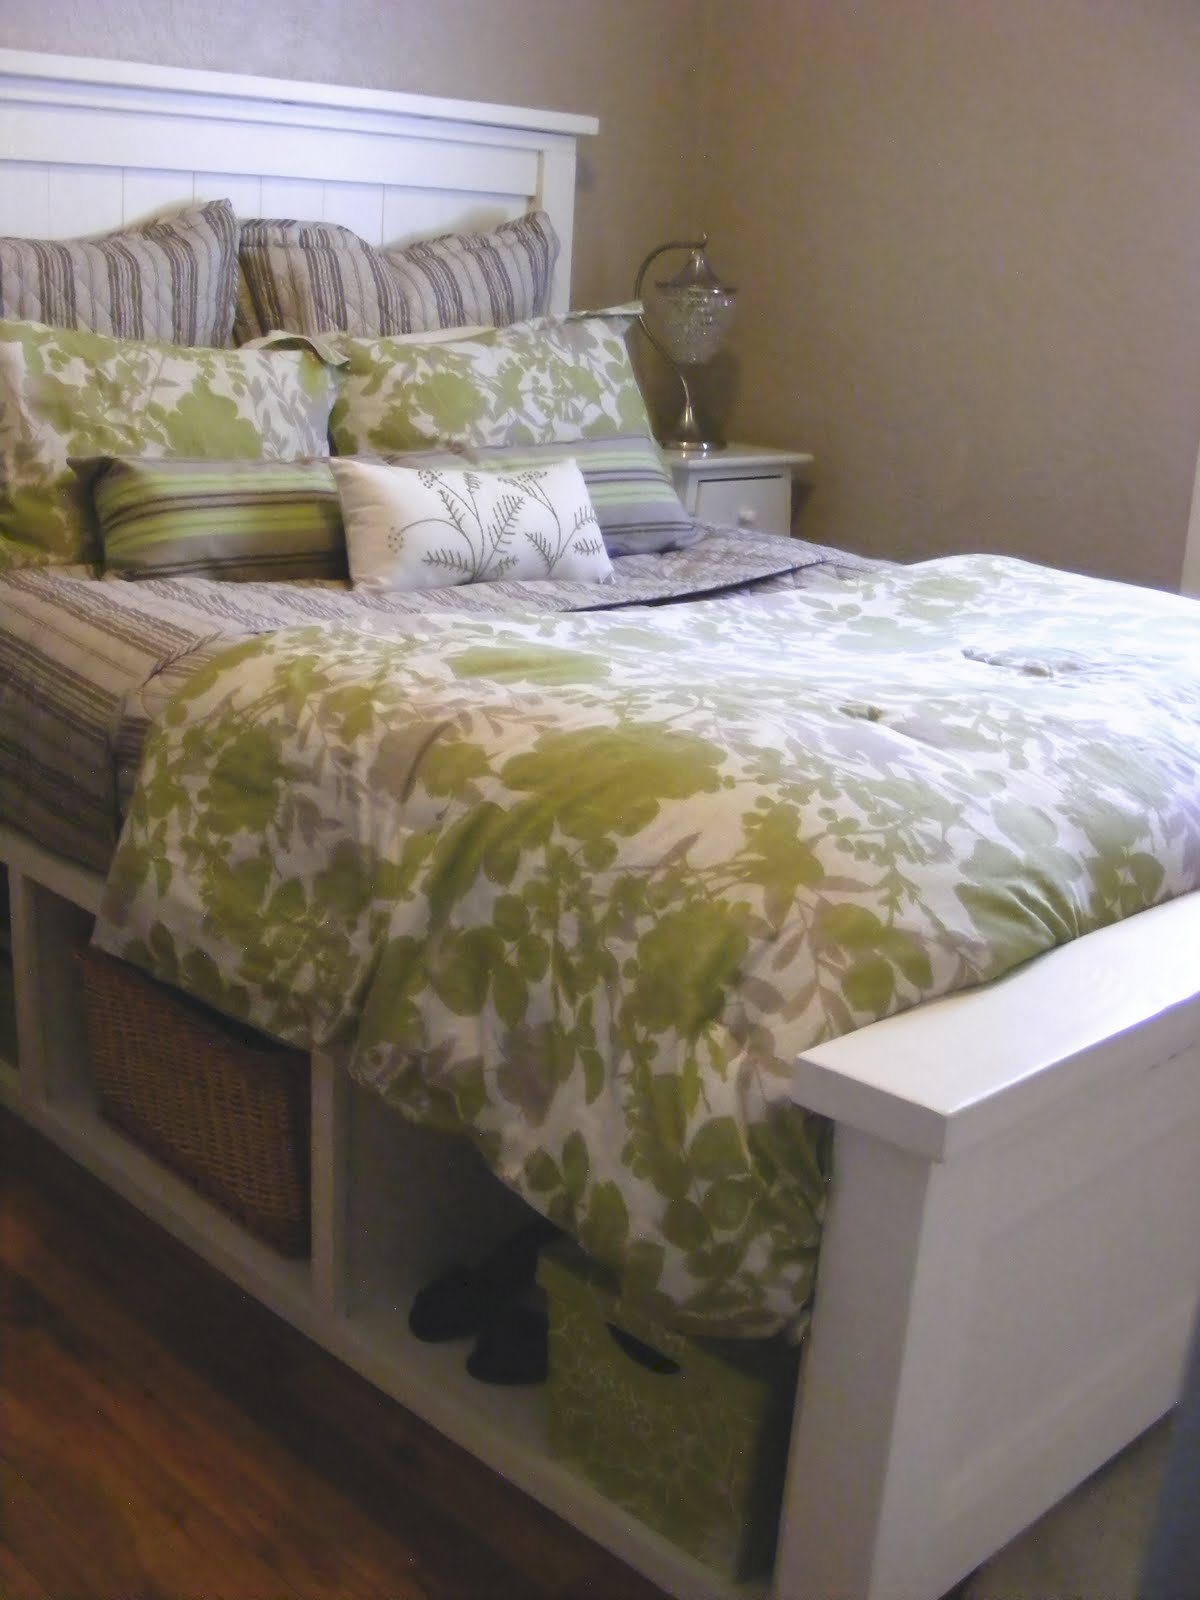 Remodelaholic build a farmhouse table for under 100 for Farmhouse bed frame plans